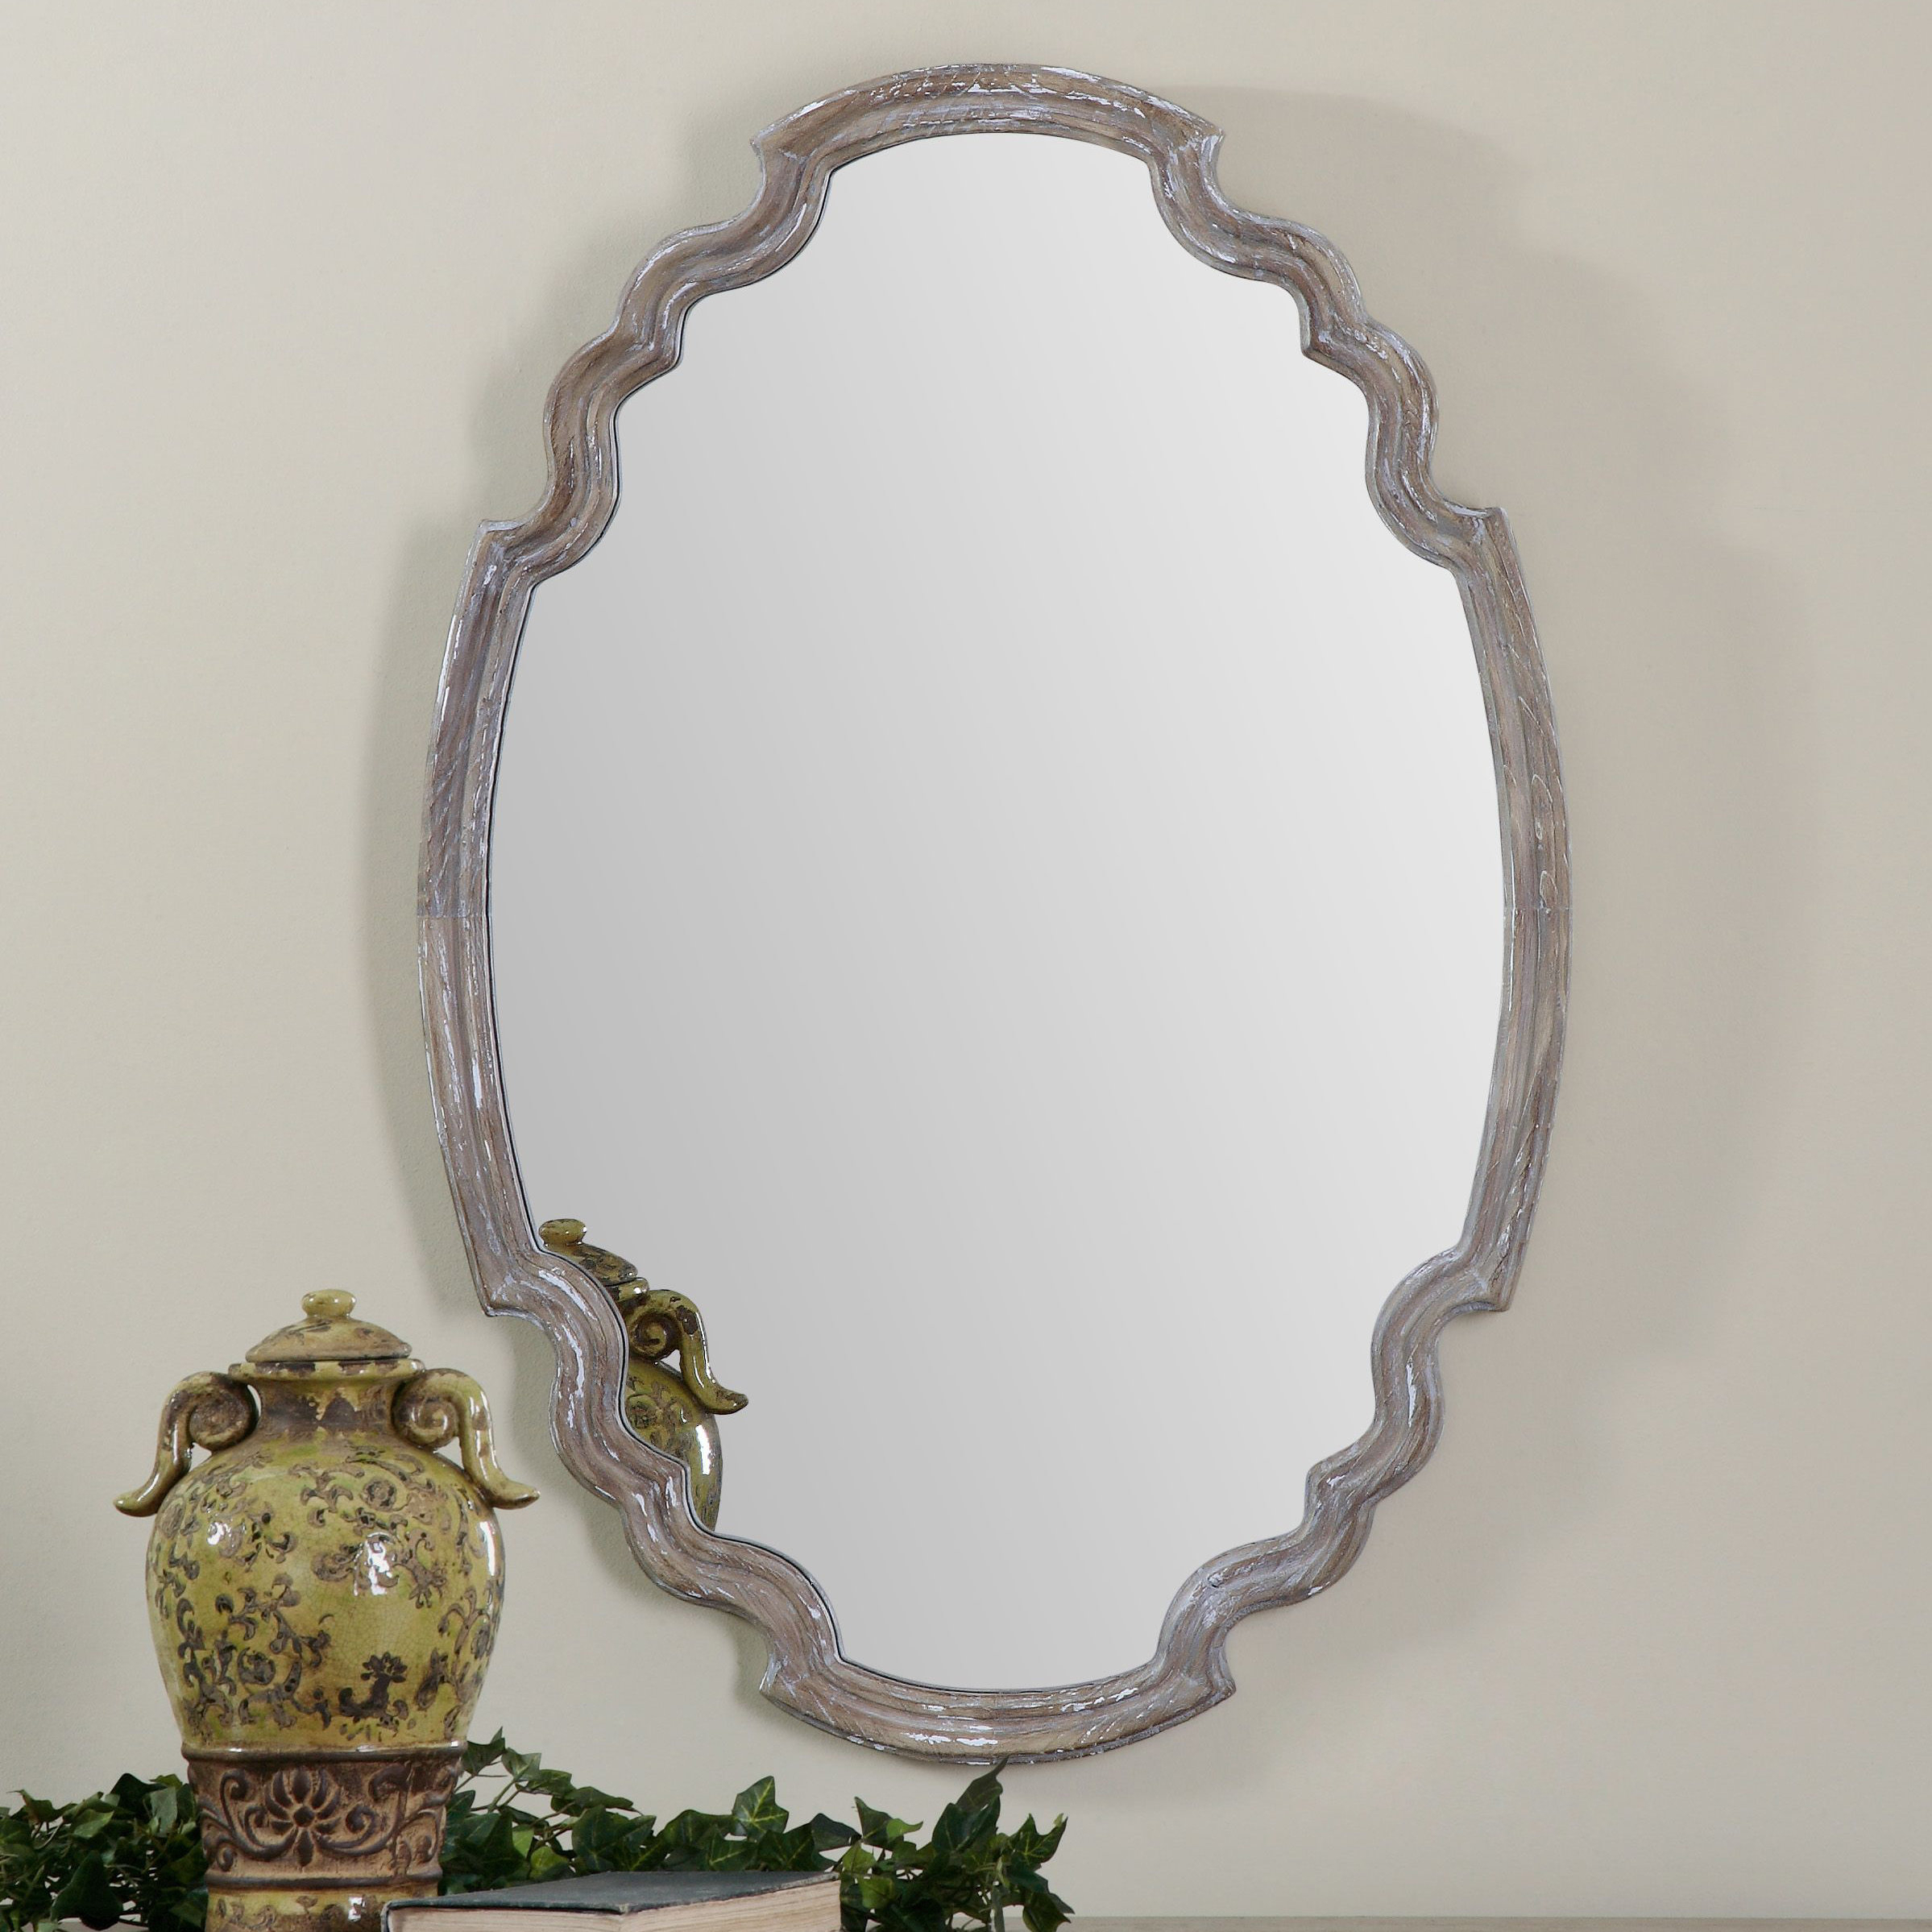 Wood Accent Mirror & Reviews | Joss & Main With Regard To Wood Accent Mirrors (View 2 of 20)